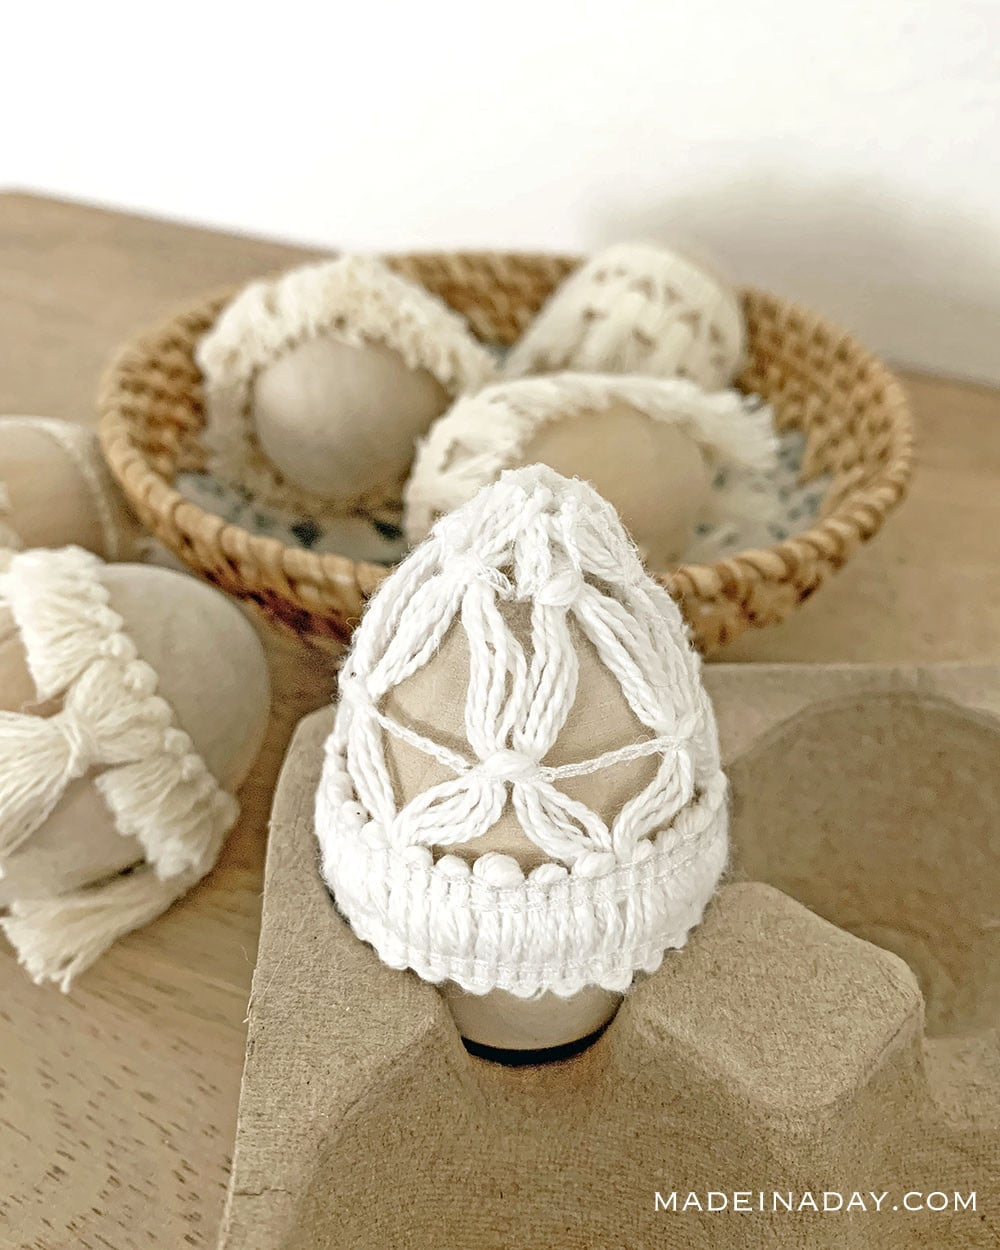 Macrame Easter Egg, Lace Easter egg, fringe Easter egg,